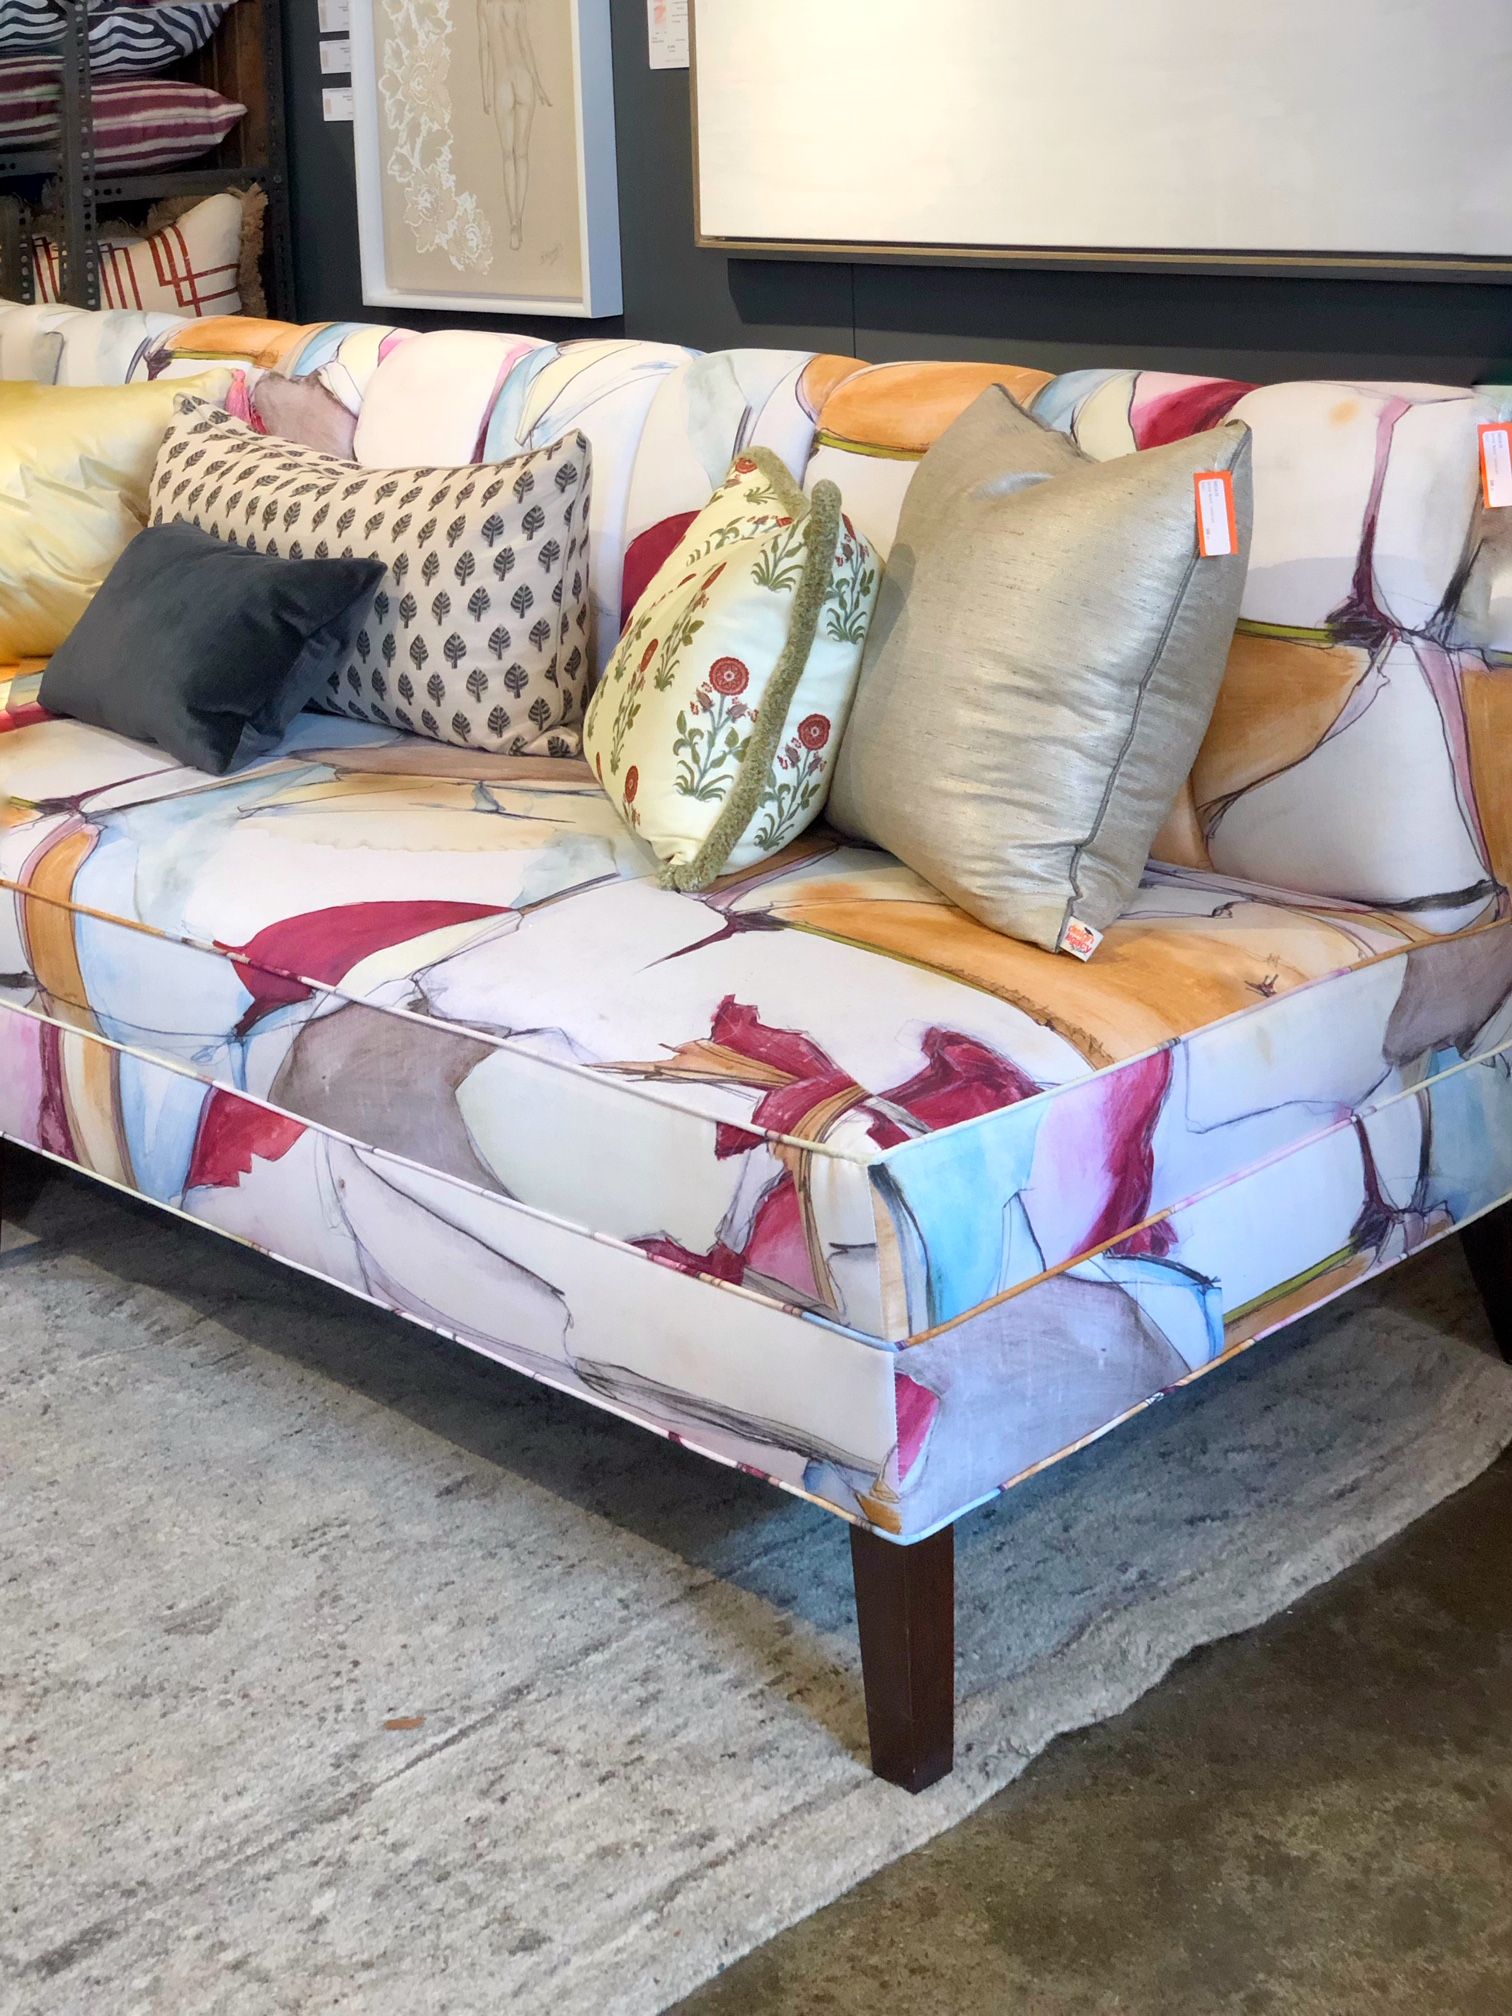 patterned fabric on sofa